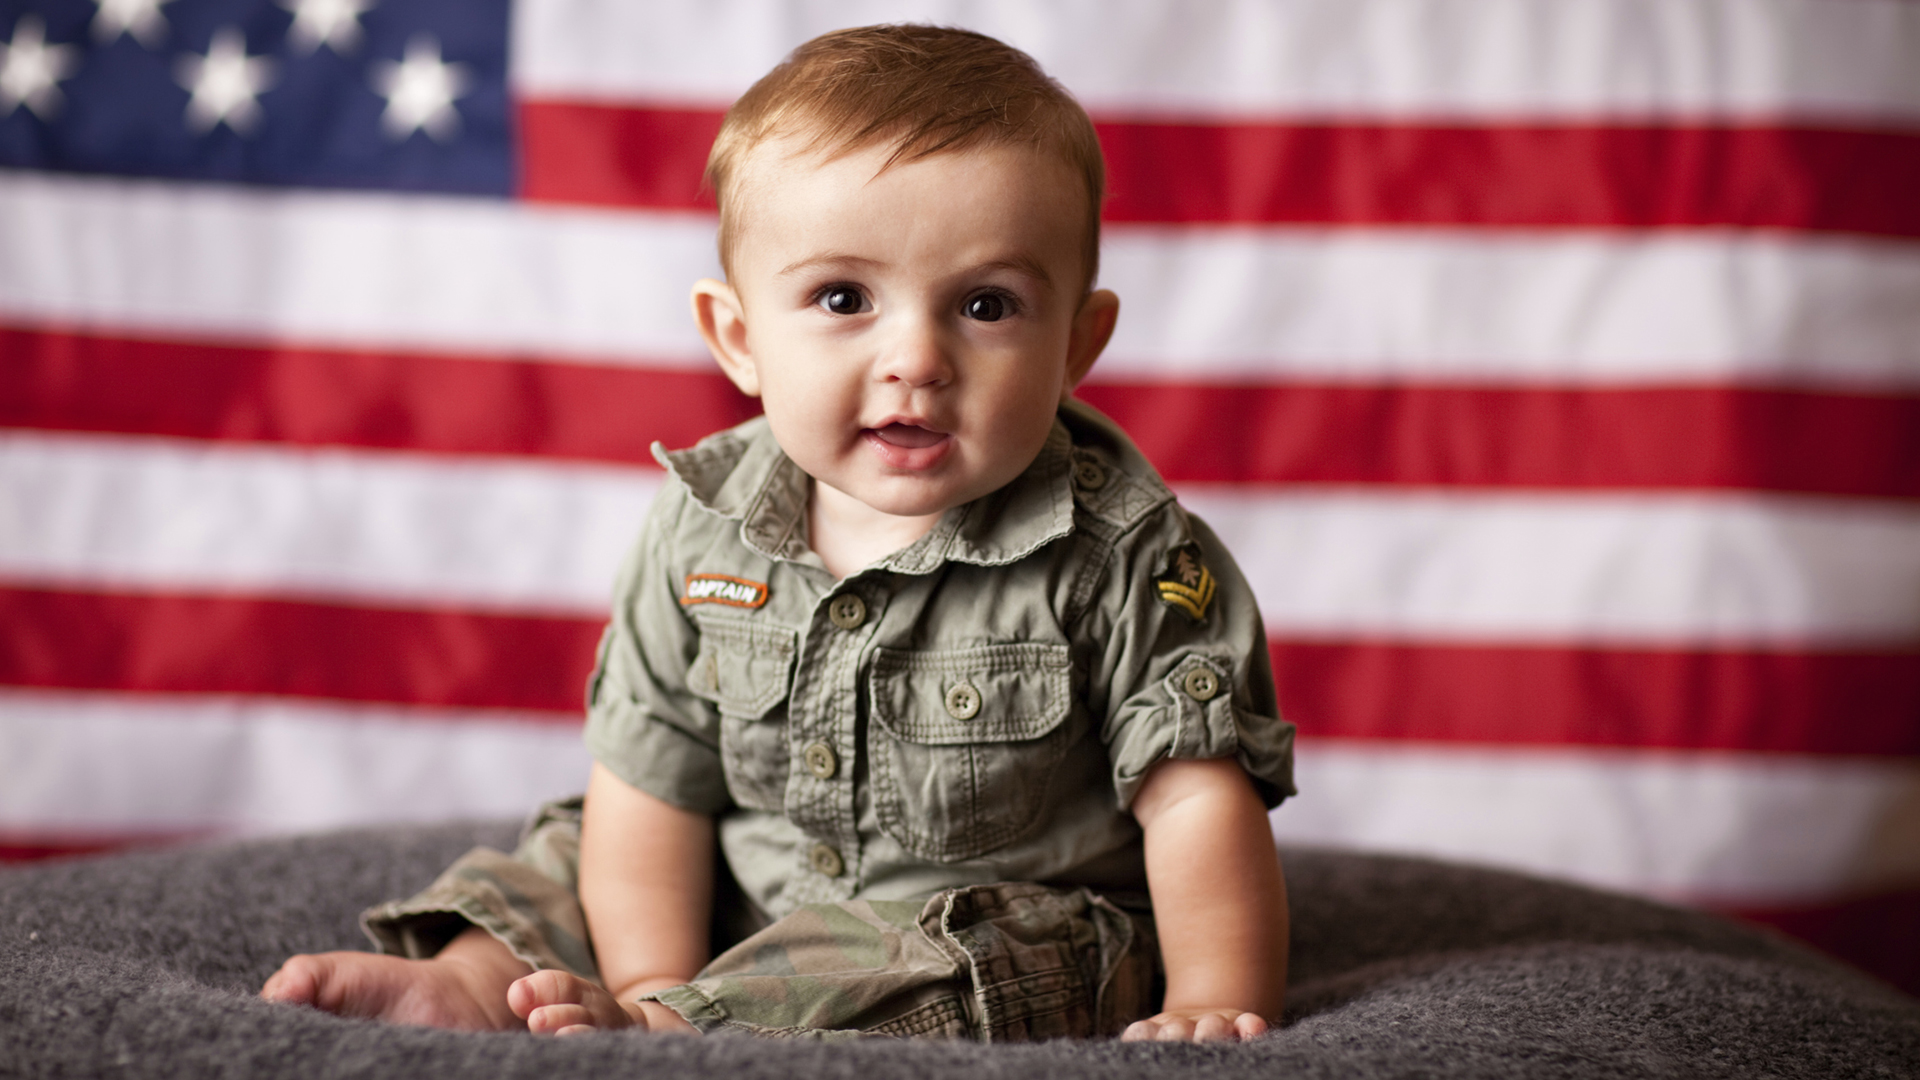 Military baby names for boys